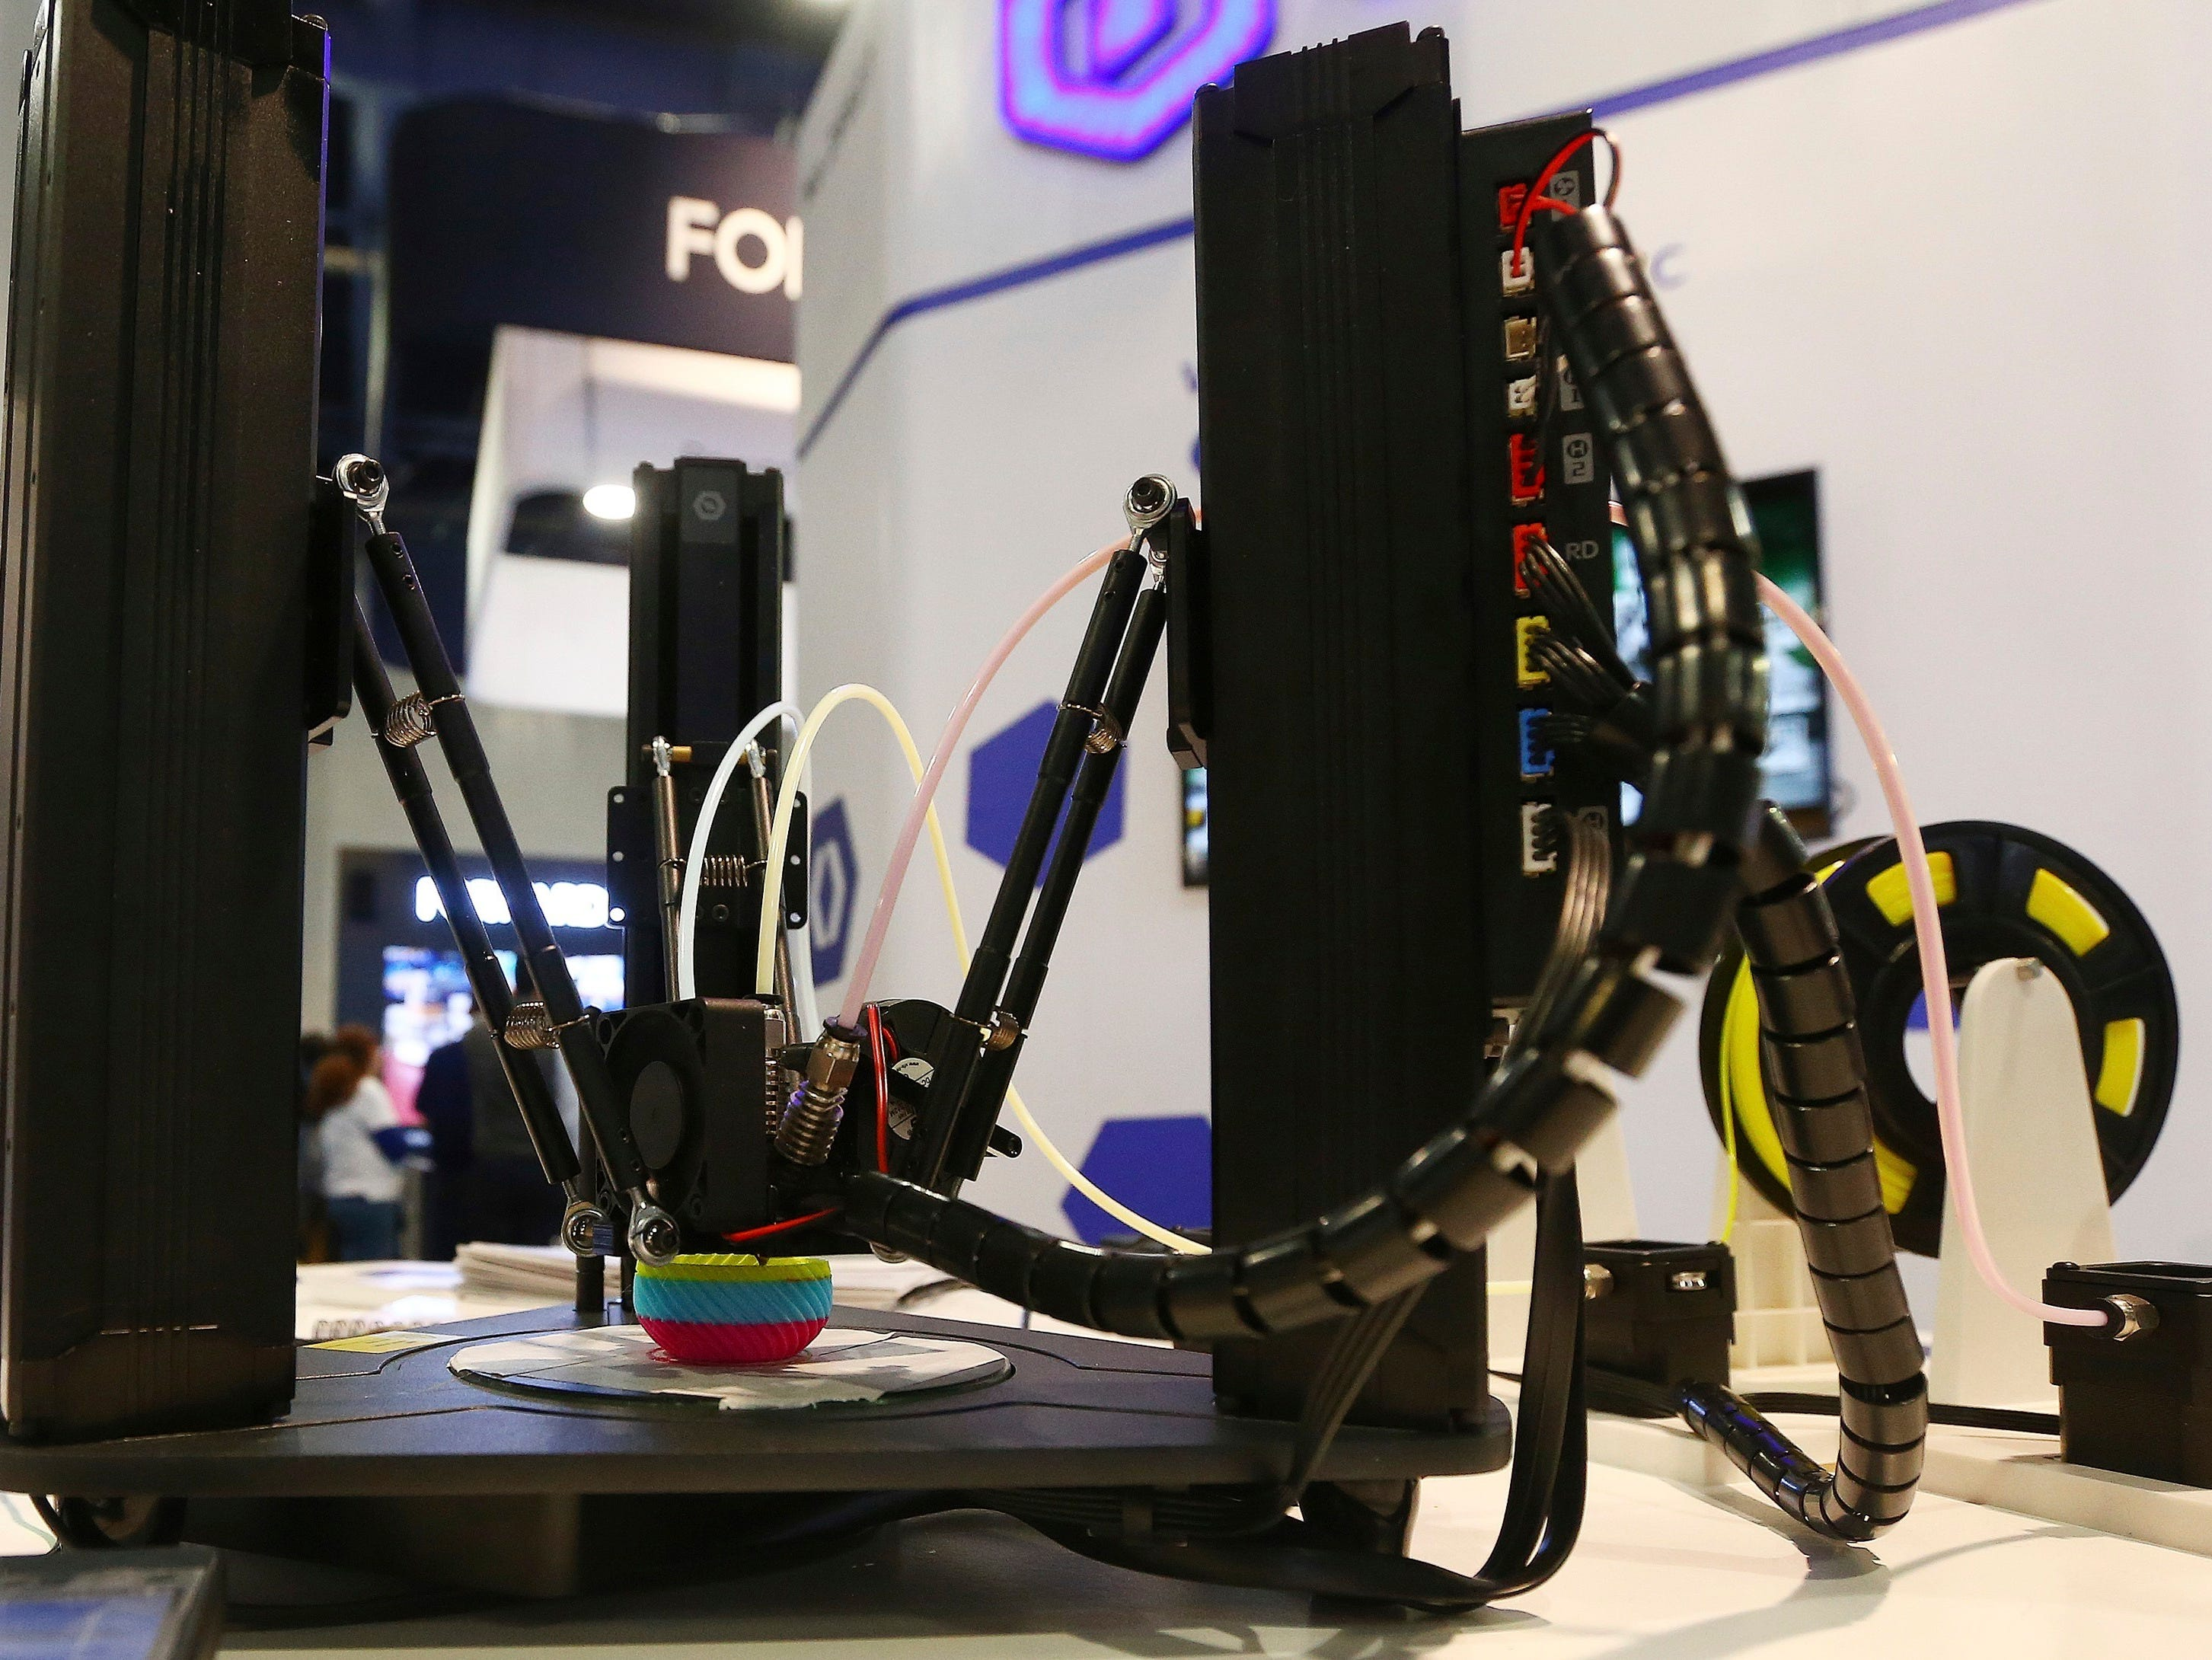 The Dobot Mooz color-mix 3D printer works on a new project at CES International on Wednesday, Jan. 9, 2019, in Las Vegas.